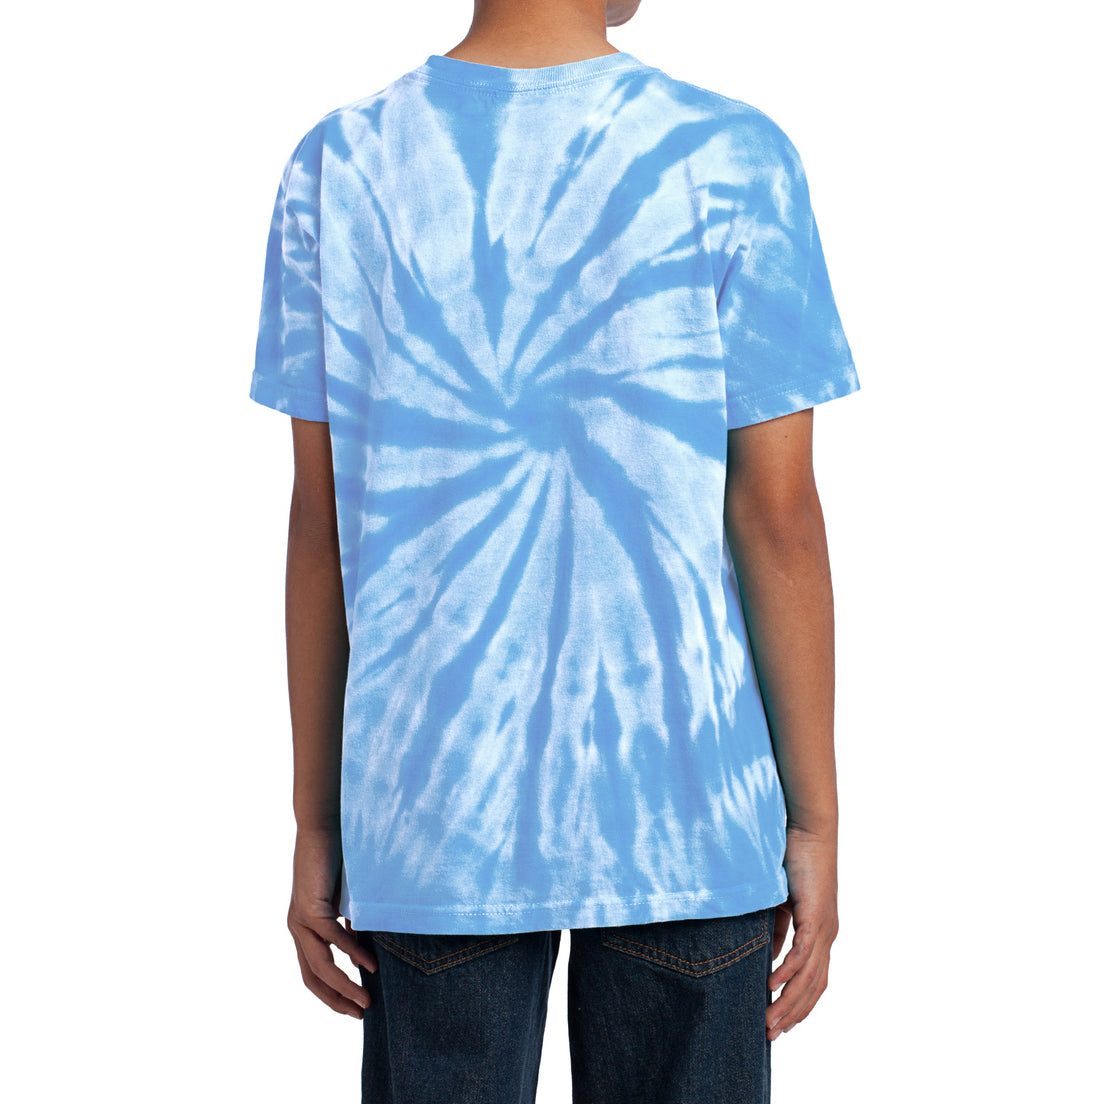 Youth Tie-Dye Tee - Light Blue